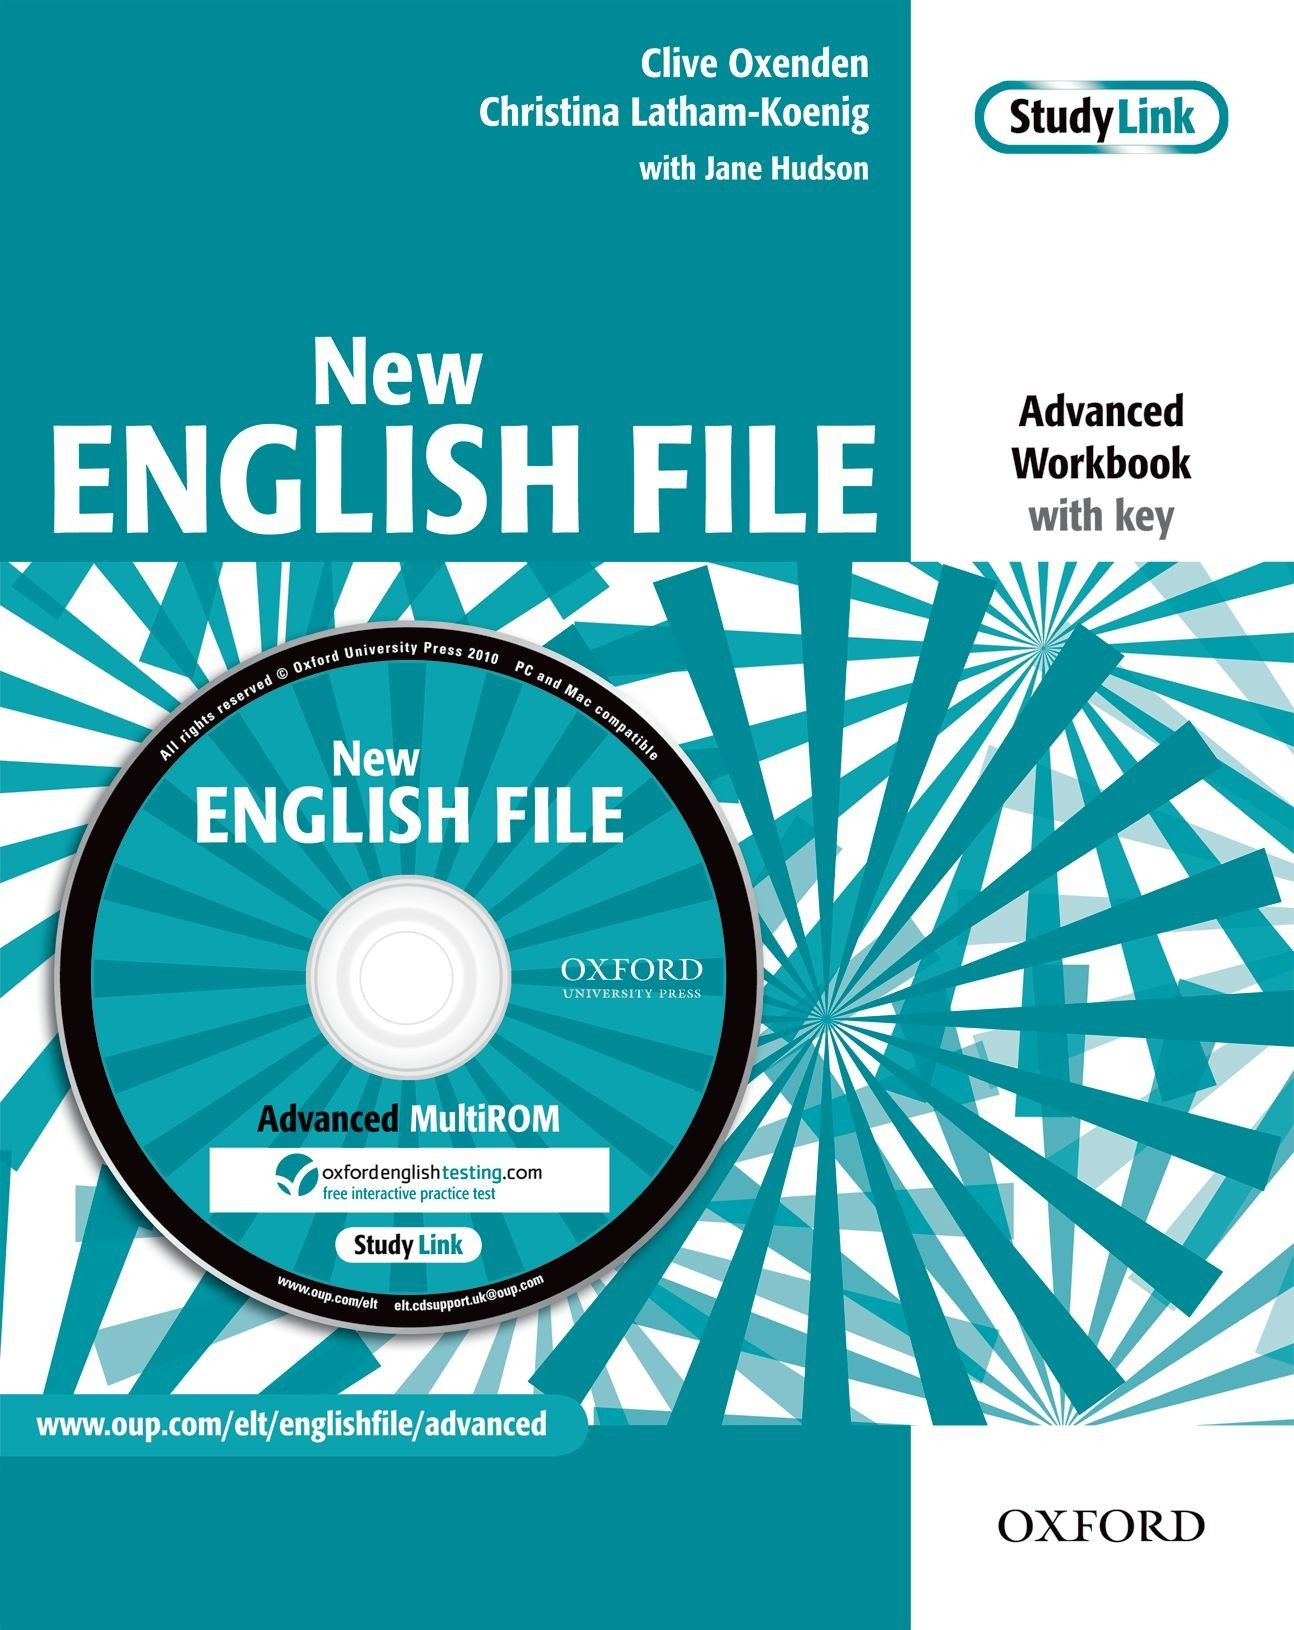 Check Out Our New Product New English File Cod Rs 210 Workbook